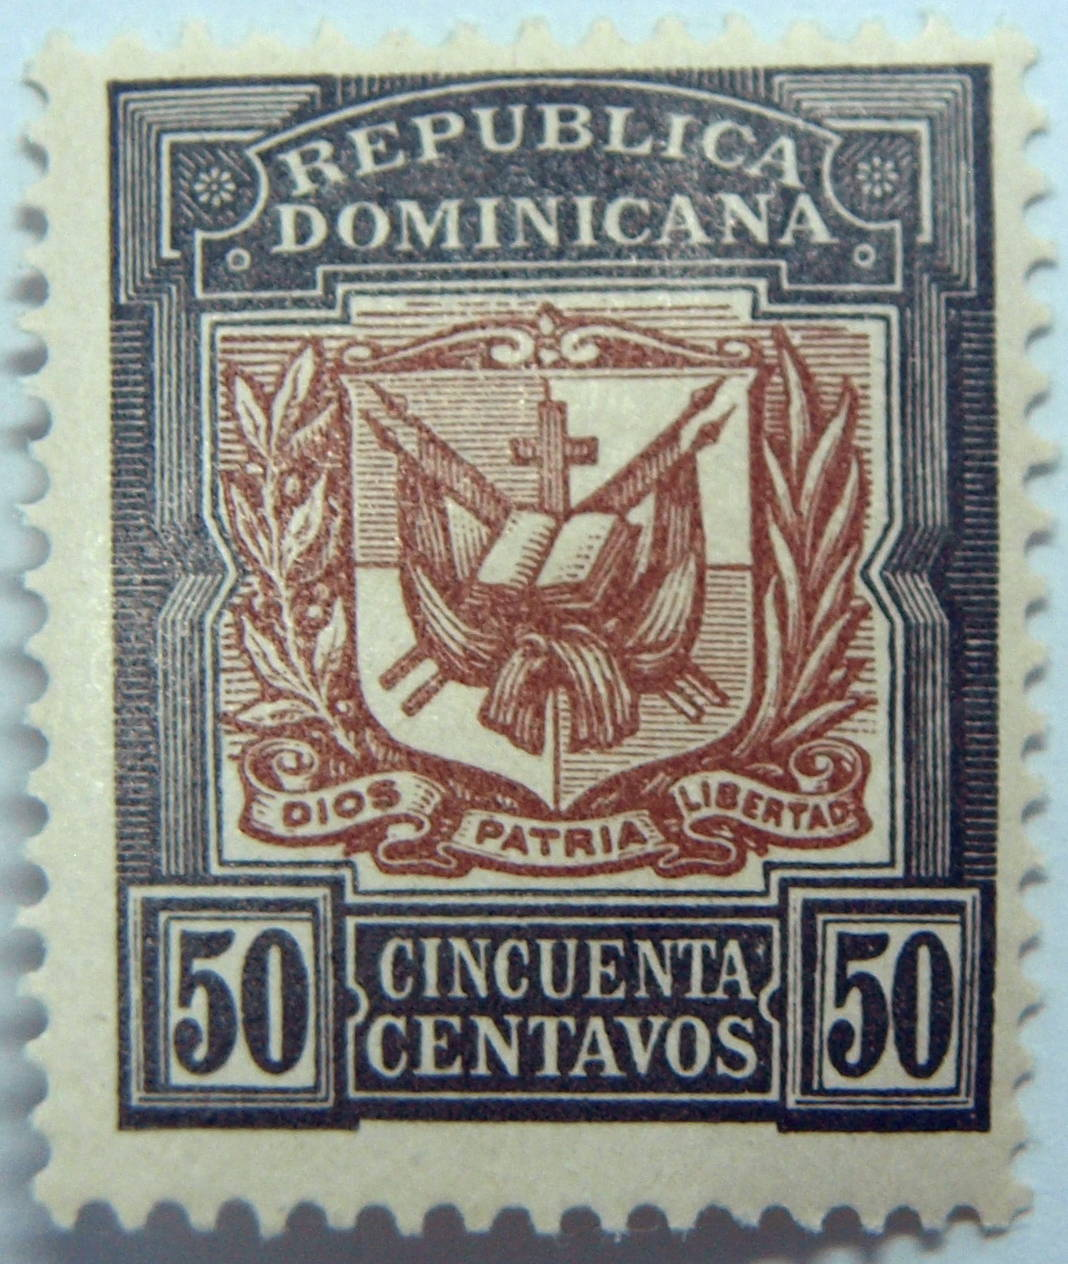 Dominicana Republica stamps